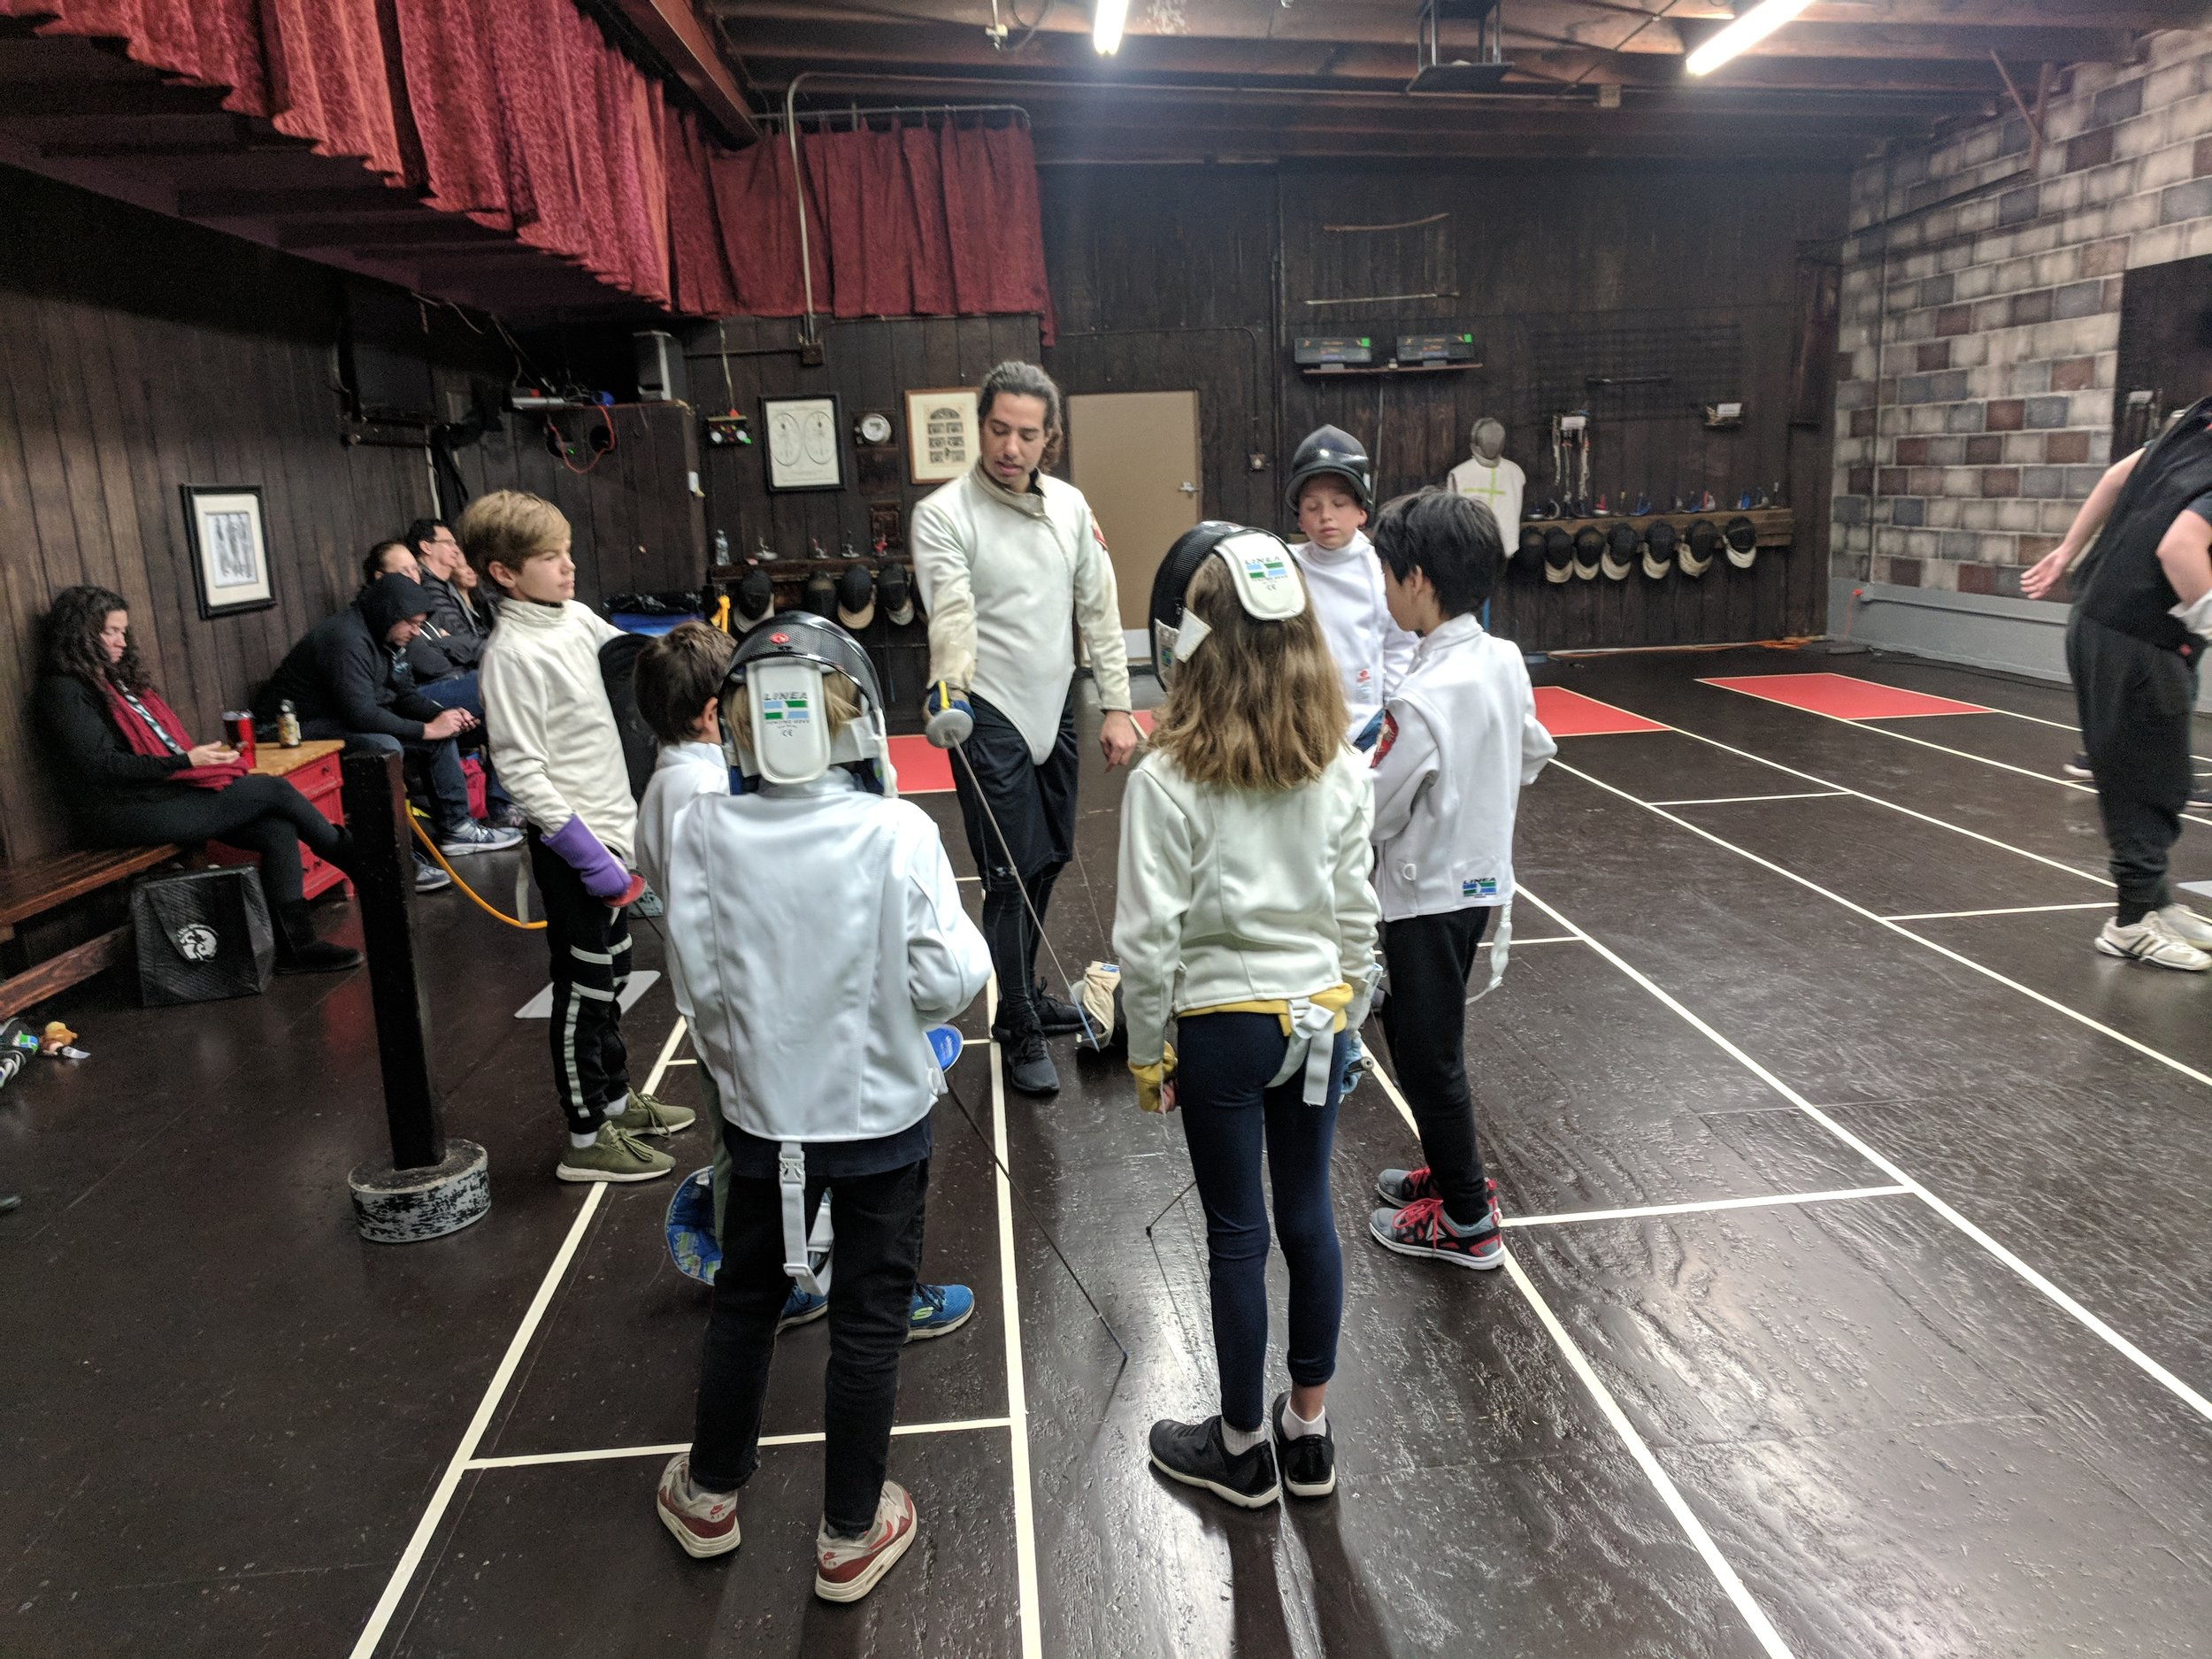 Fencing training at Swordplay LA